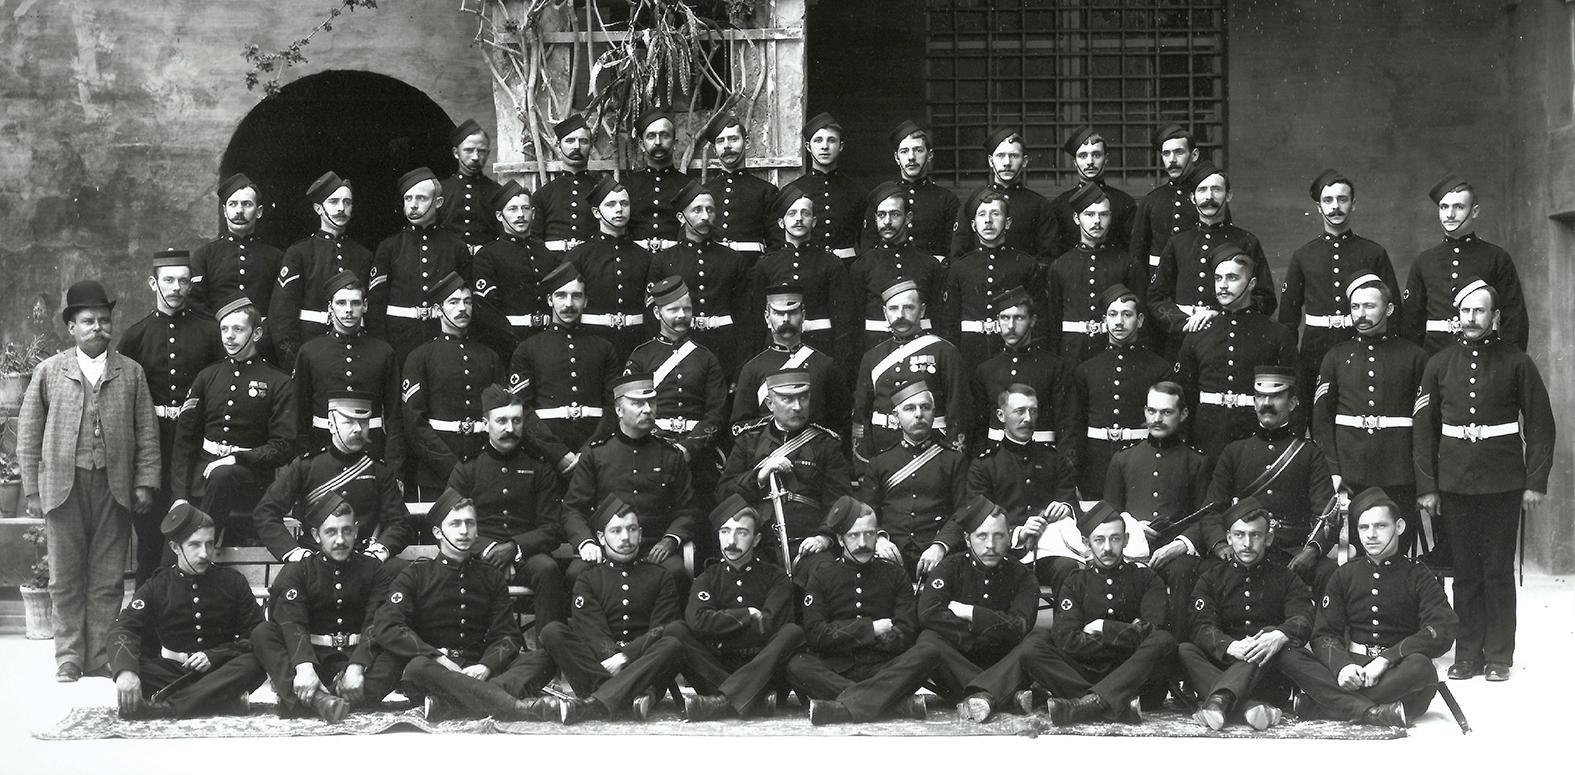 RAMC Valletta Hospital, June 1894: Surgeon Captain Matthew Louis Hughes is seated second from right and Prof. Col. Manché is two seats away, fourth from right.